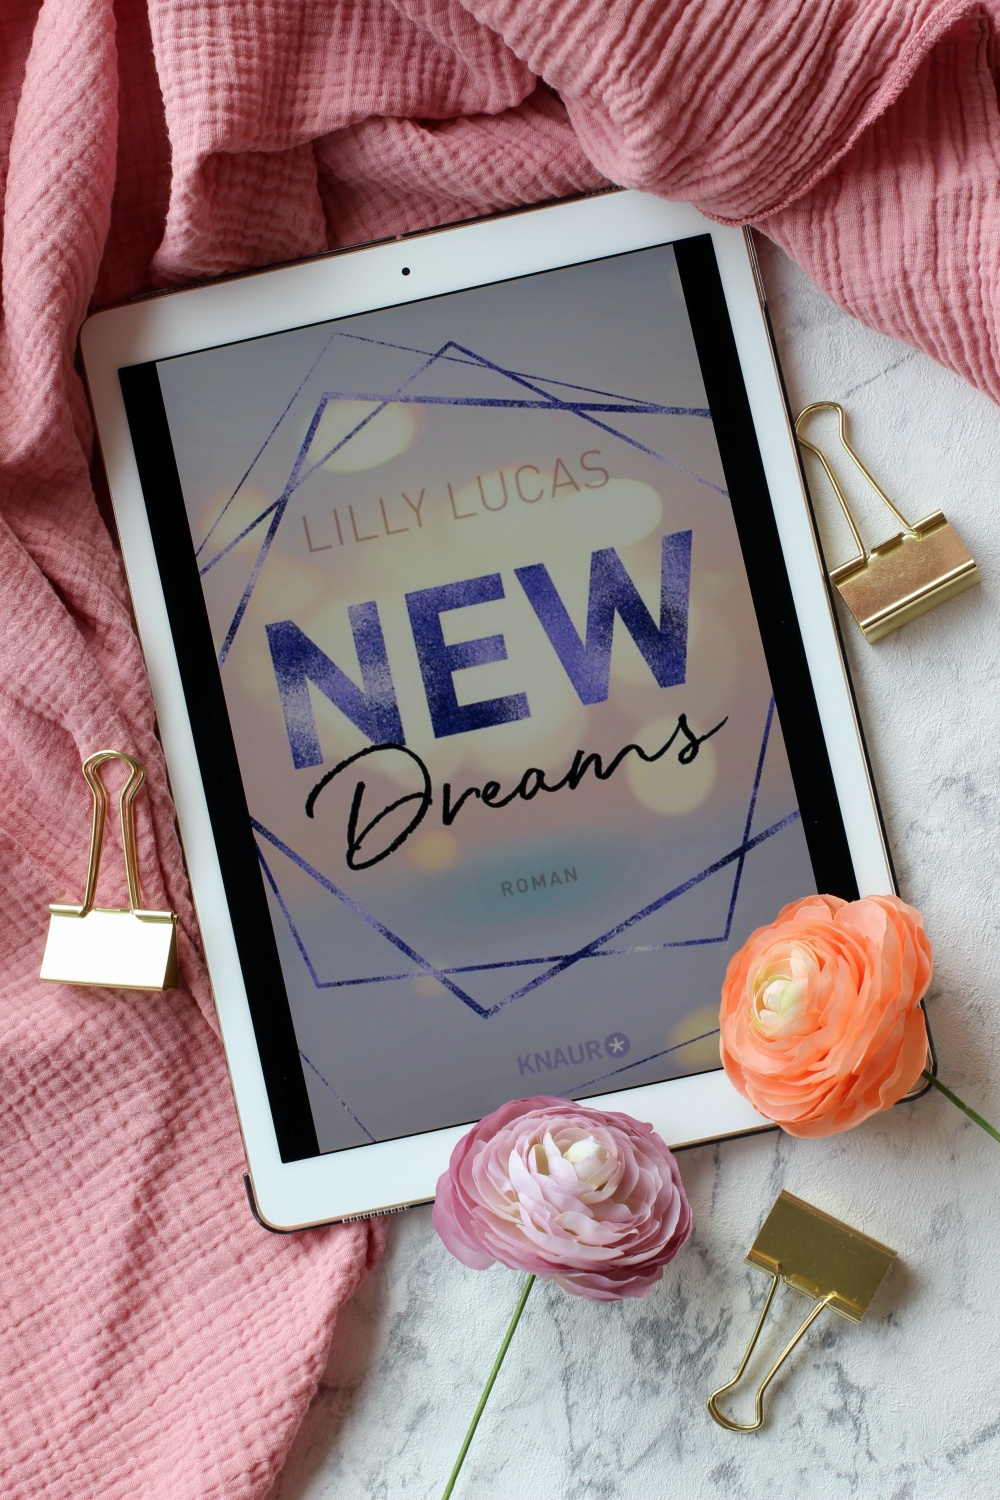 New Dreams von Lilly Lucas